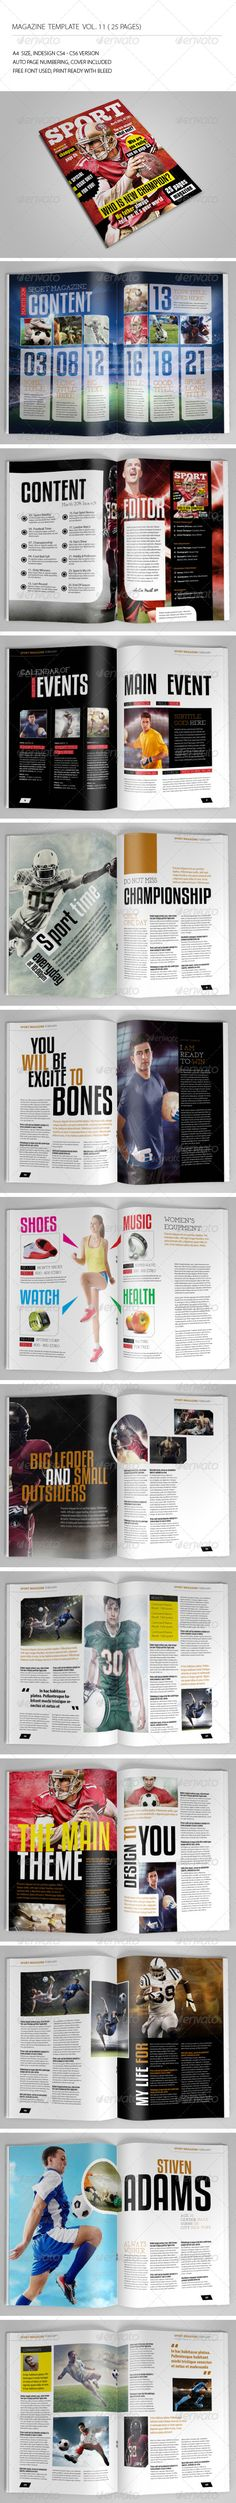 25 Pages Sport Magazine Vol11 by -BeCreative- 25 Pages Sport Magazine Vol11: This item consist of 25 pages that fully editable and customizable.Detail :25 pages Size A4 (8.27x1